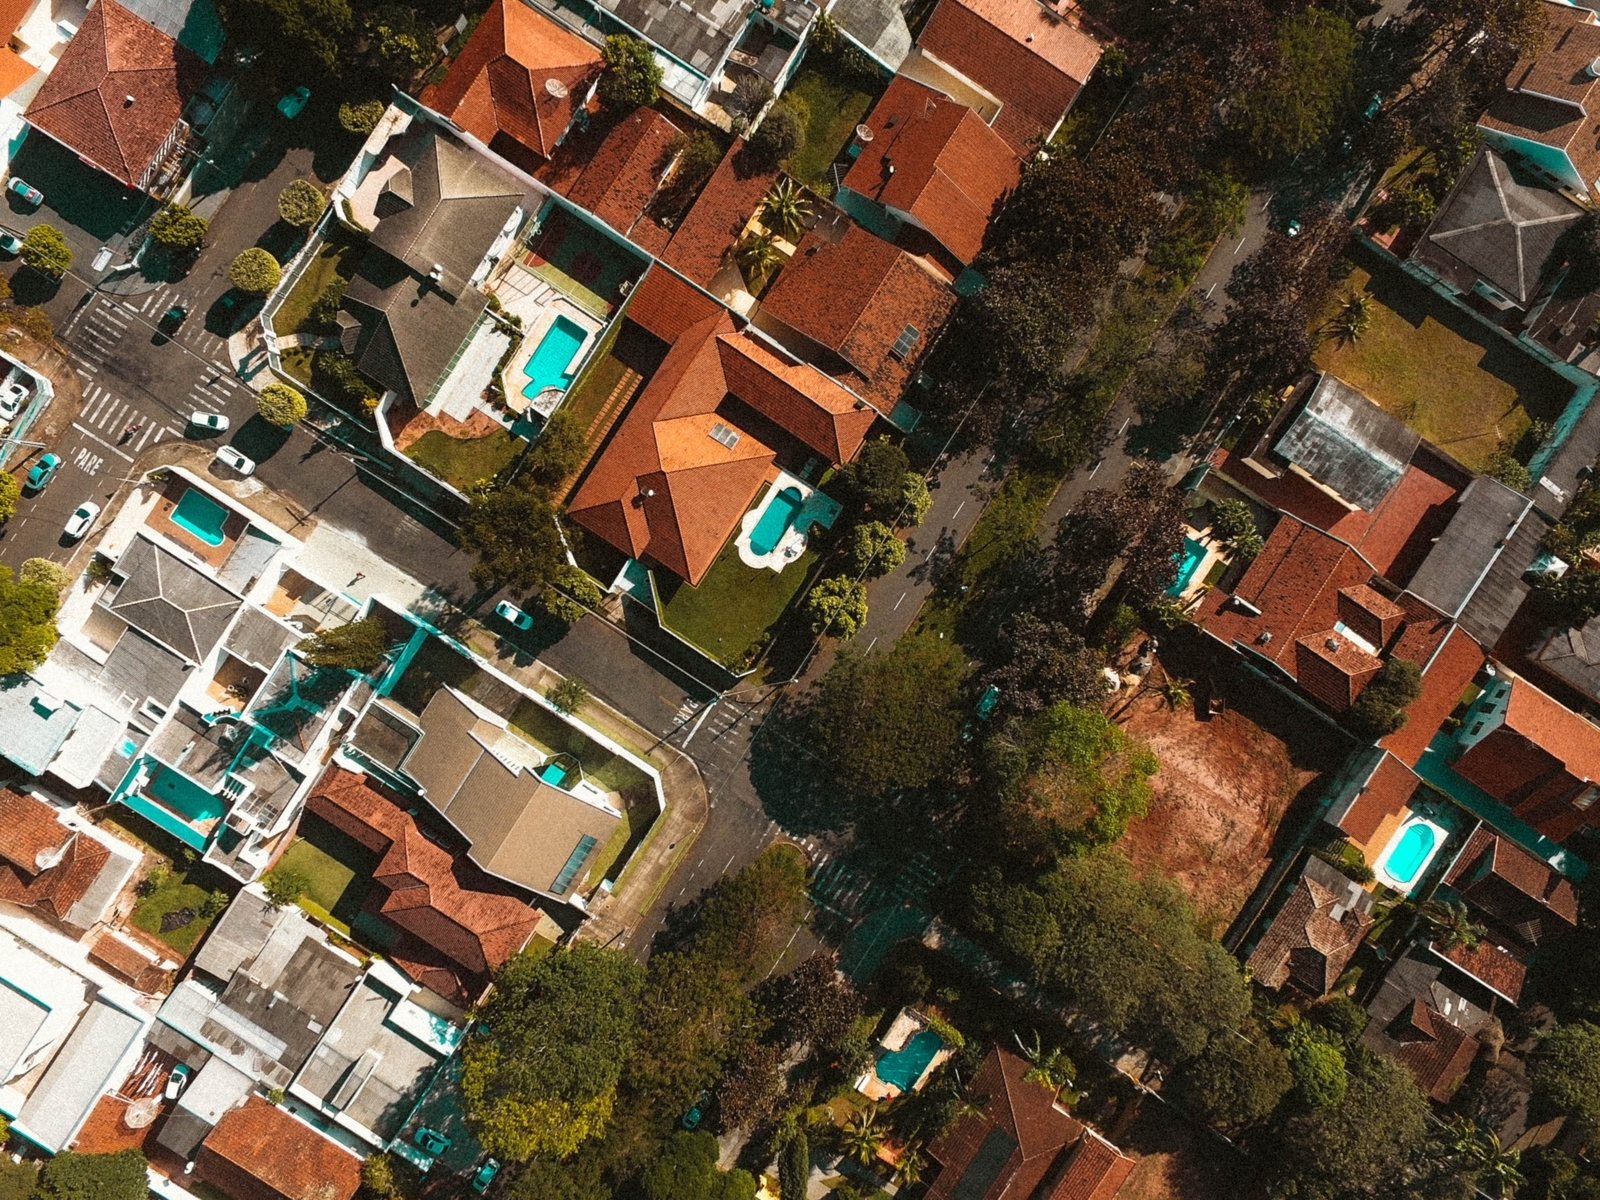 Aerial view of neighborhood homes